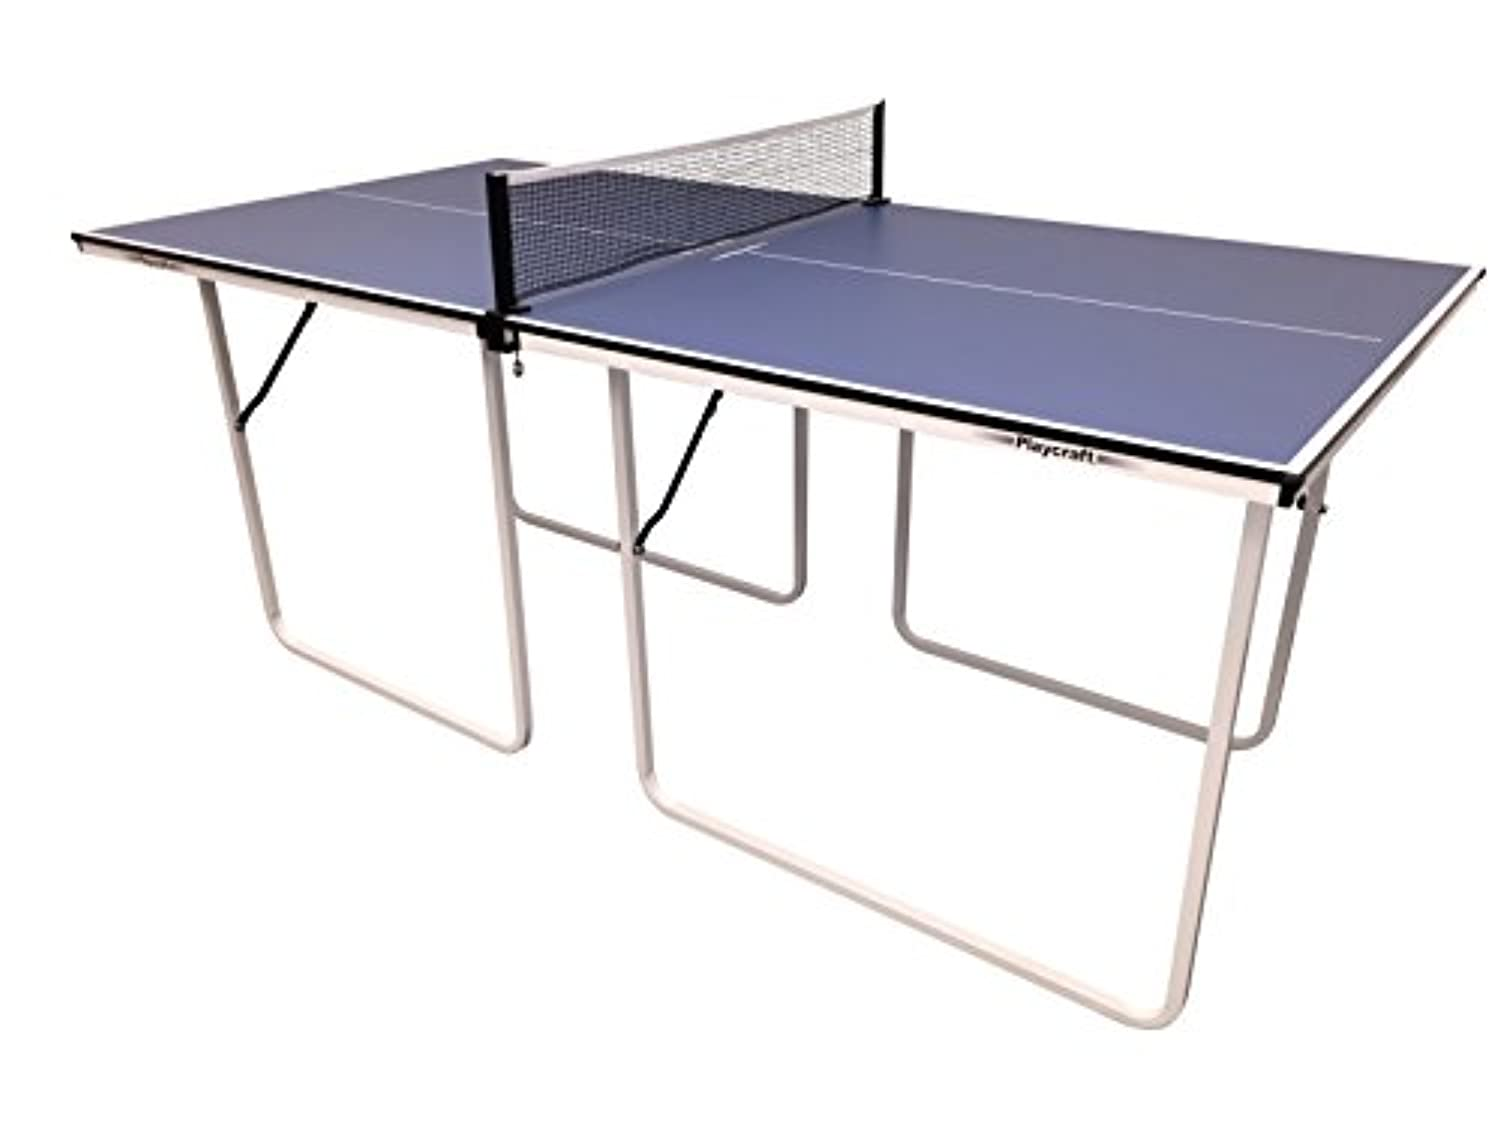 Playcraft Topspin Midsize 6 ' Table Tennis Table